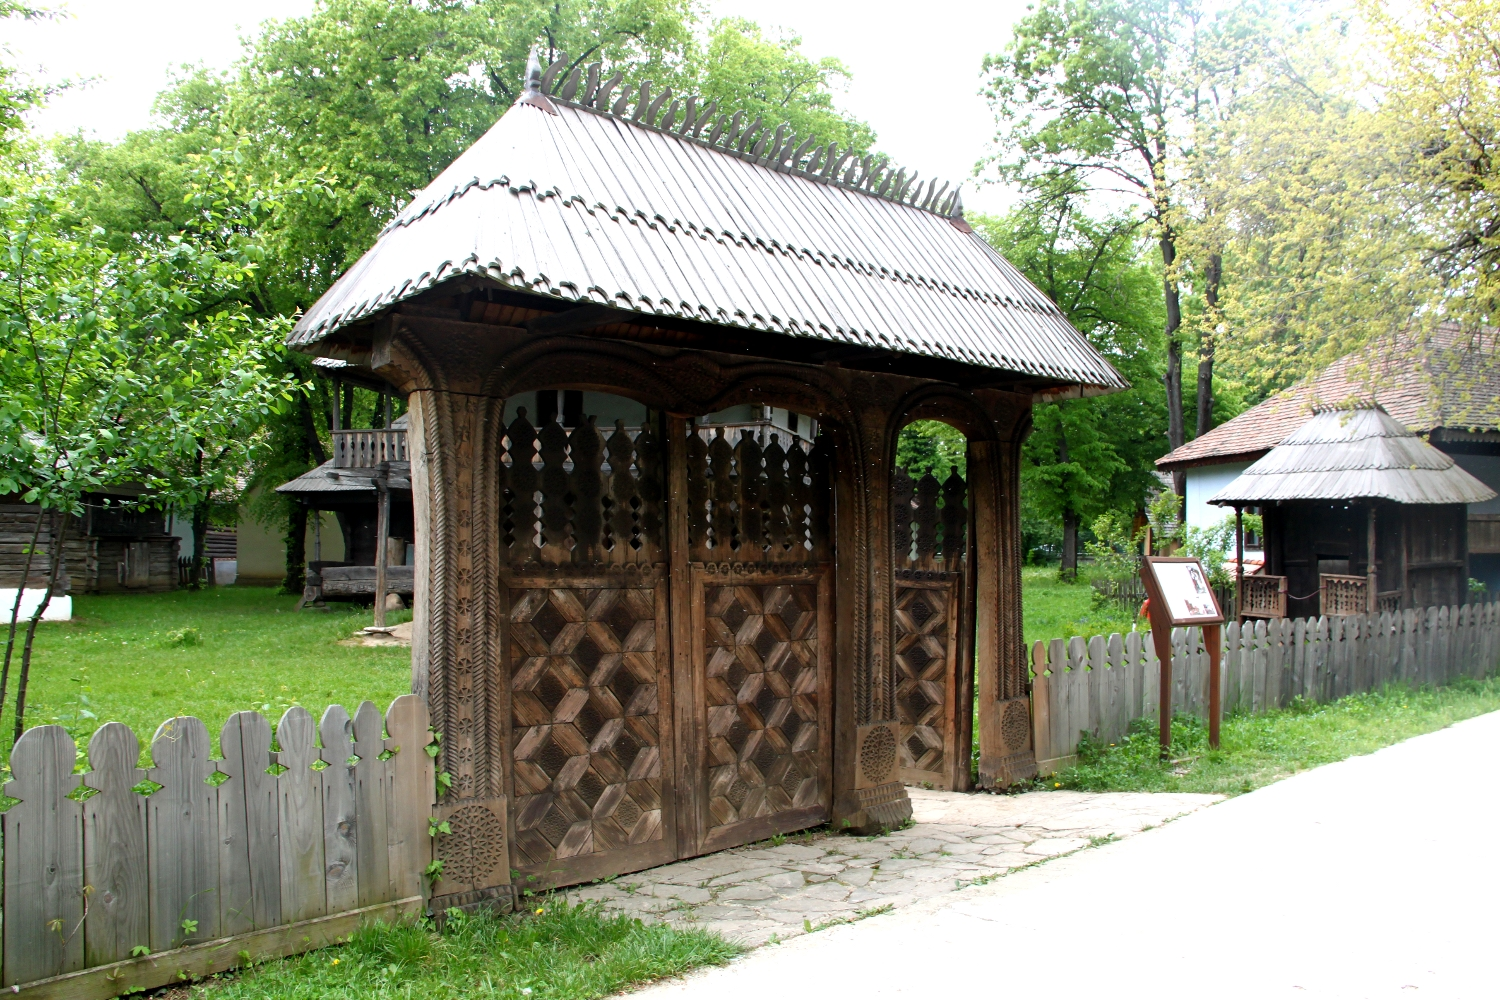 Gate of a Household of rich peasants from Gorj, Romania - from 1800